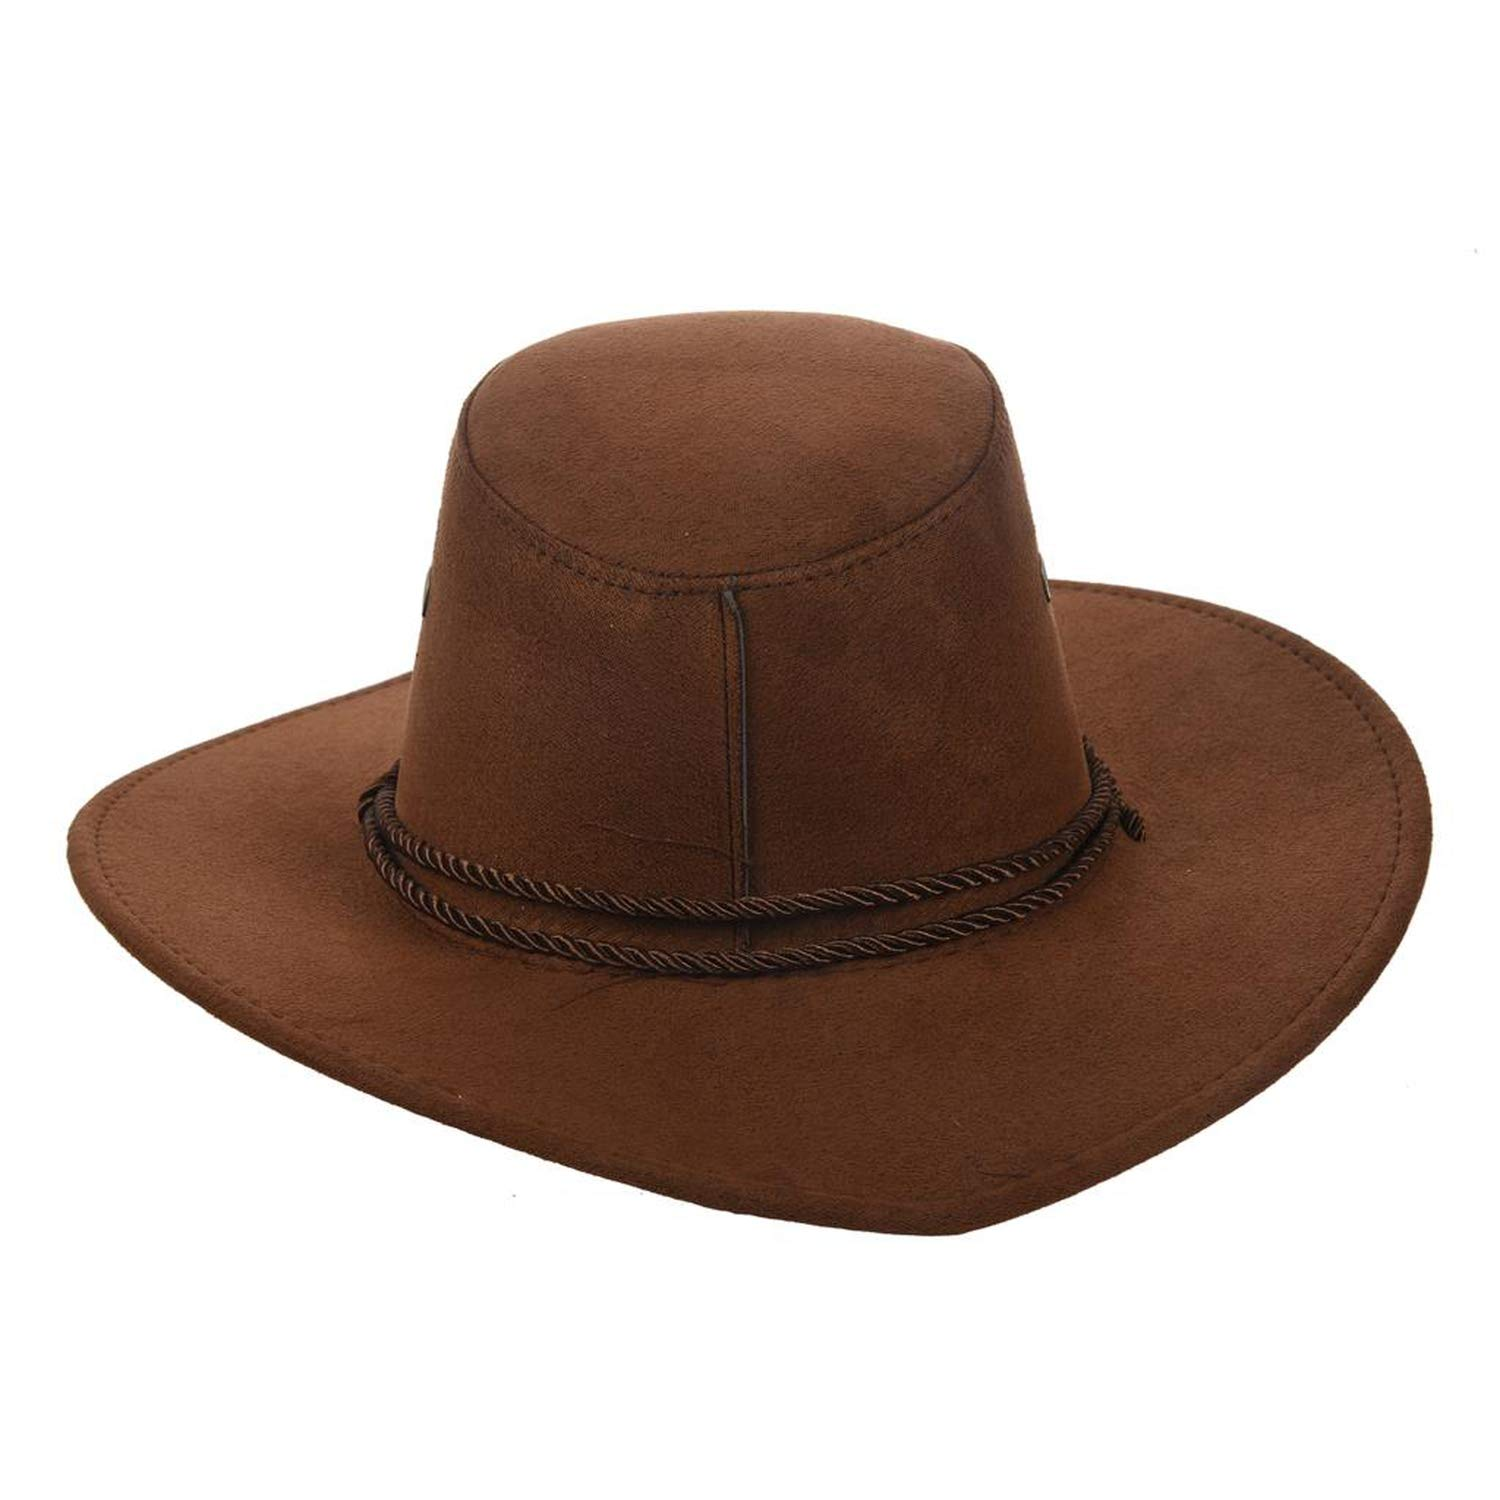 CHENTAI New Cowboy Cap Suede West Fancy Cowgirl Unisex Hat